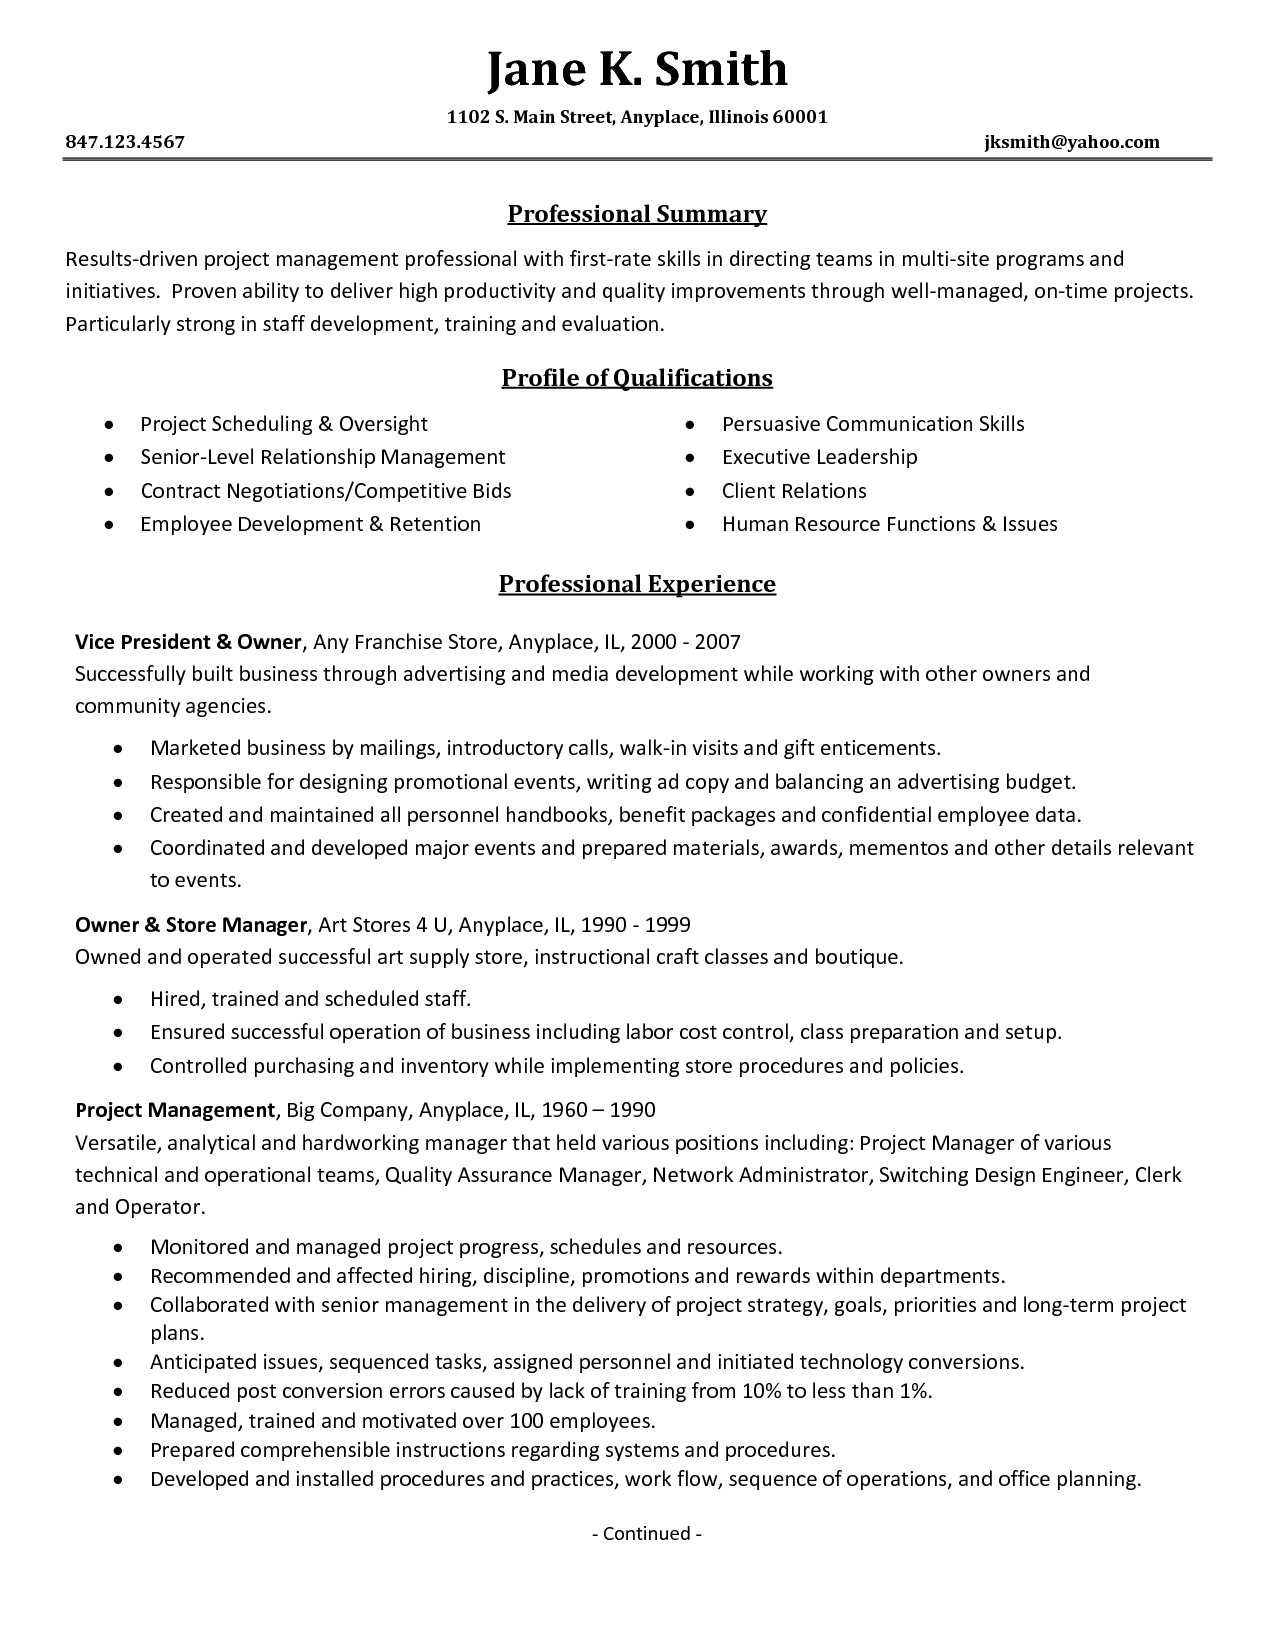 Supervisor Resume Skills Leadership Skills Resume Leadership Skills Resume Template